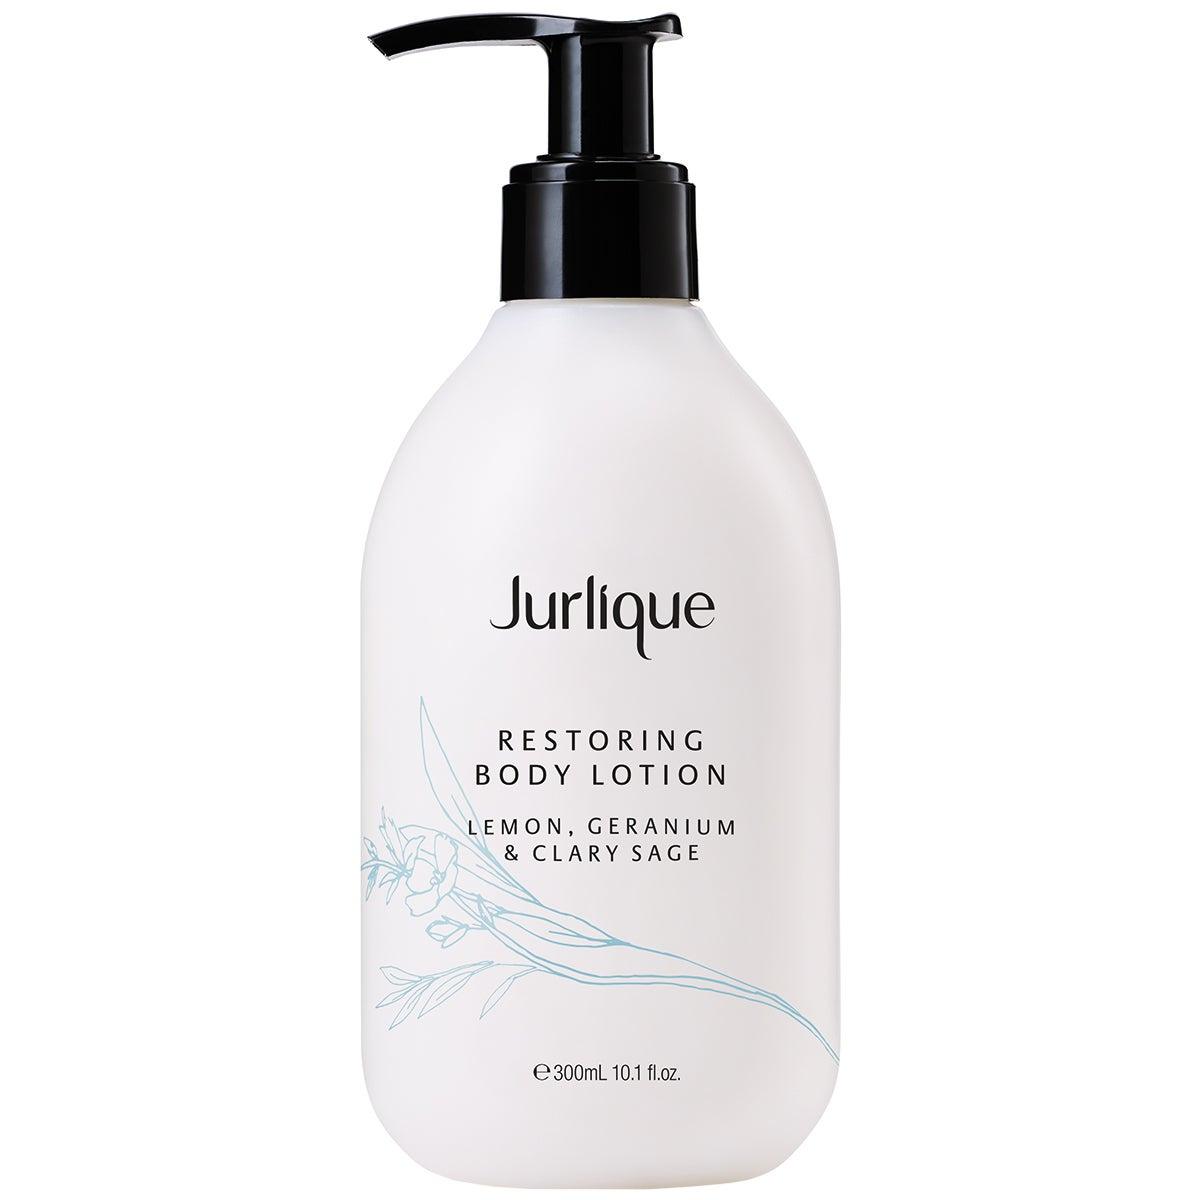 Jurlique Restoring Body Lotion Lemon Geranium & Clary Sage